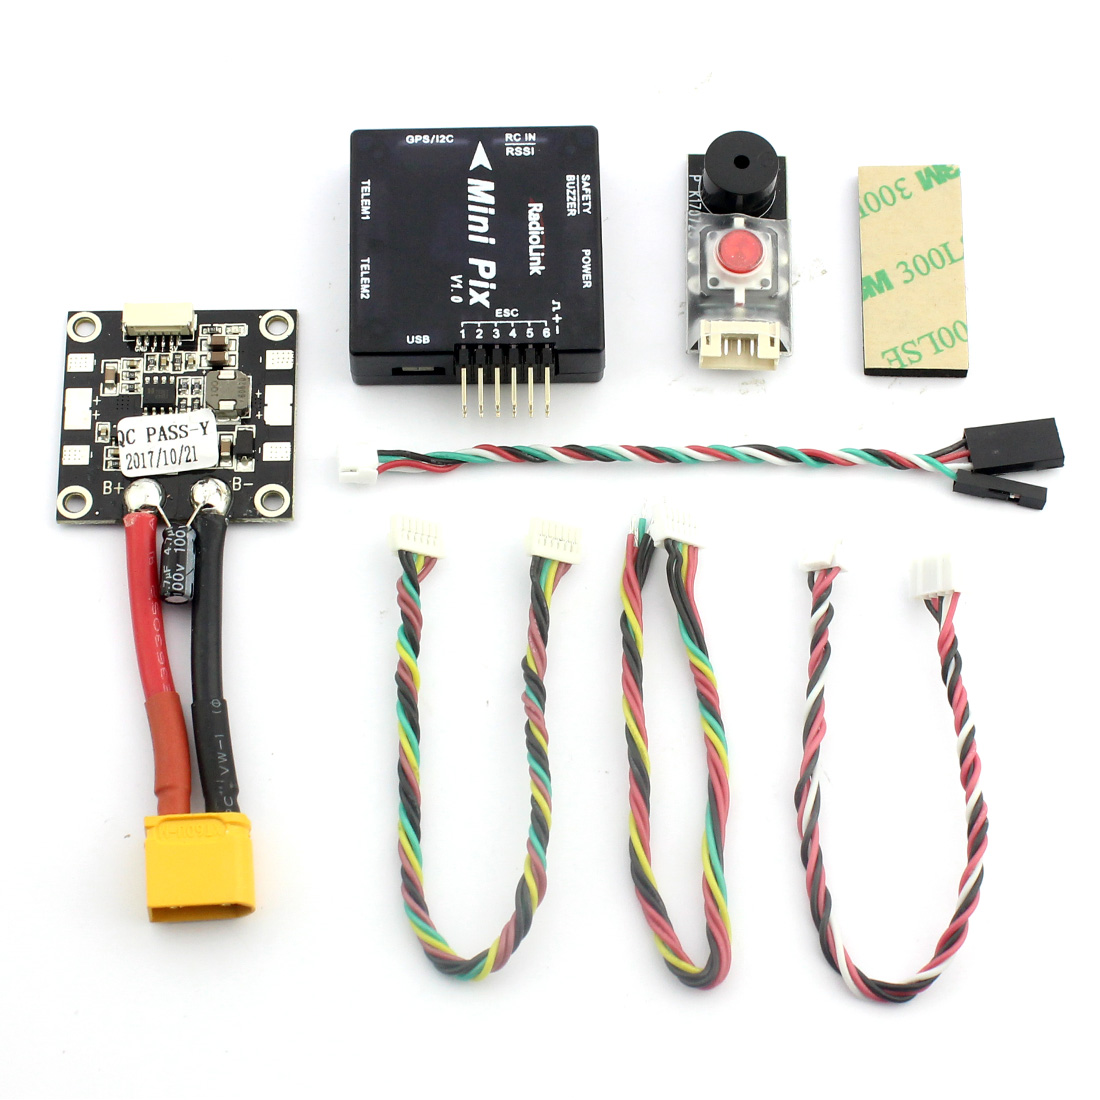 Radiolink Mini PIX M8N GPS Flight Control Vibration Damping by Software Atitude Hold for RC Racer Drone Multicopter Quadcopter